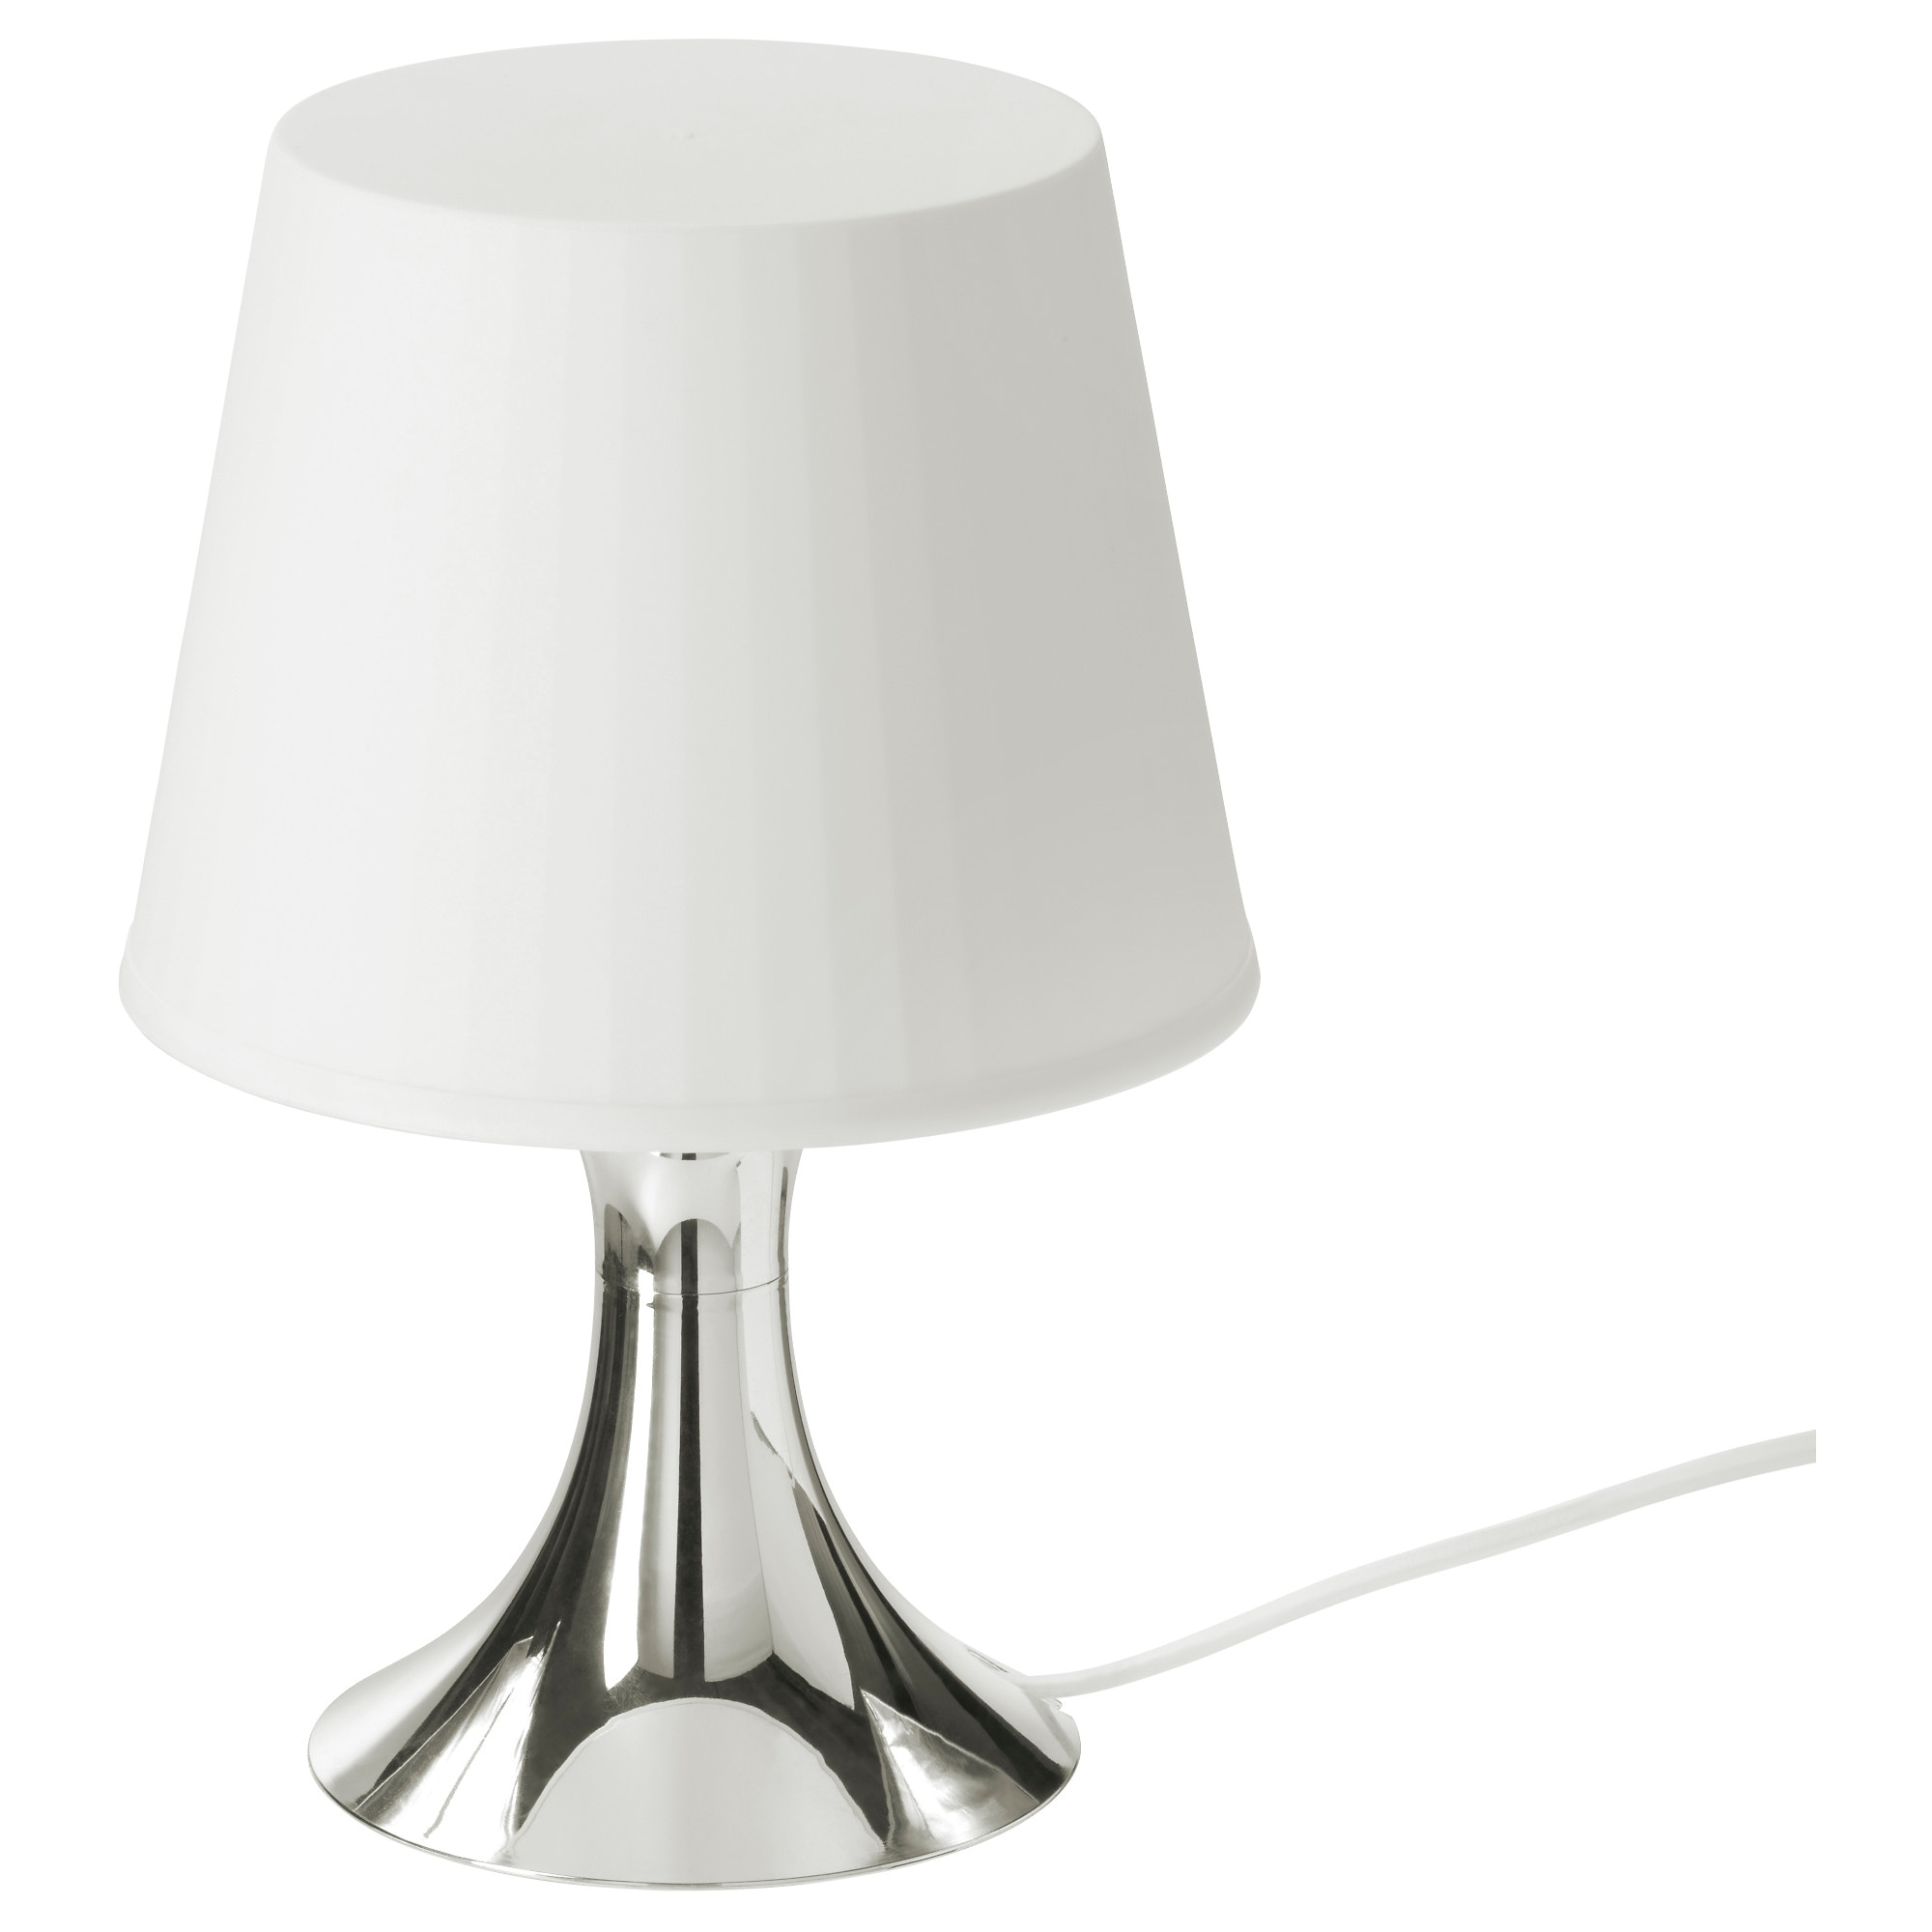 Table lamps ikea lampan table lamp with led bulb silver color max 40 w shade width geotapseo Choice Image